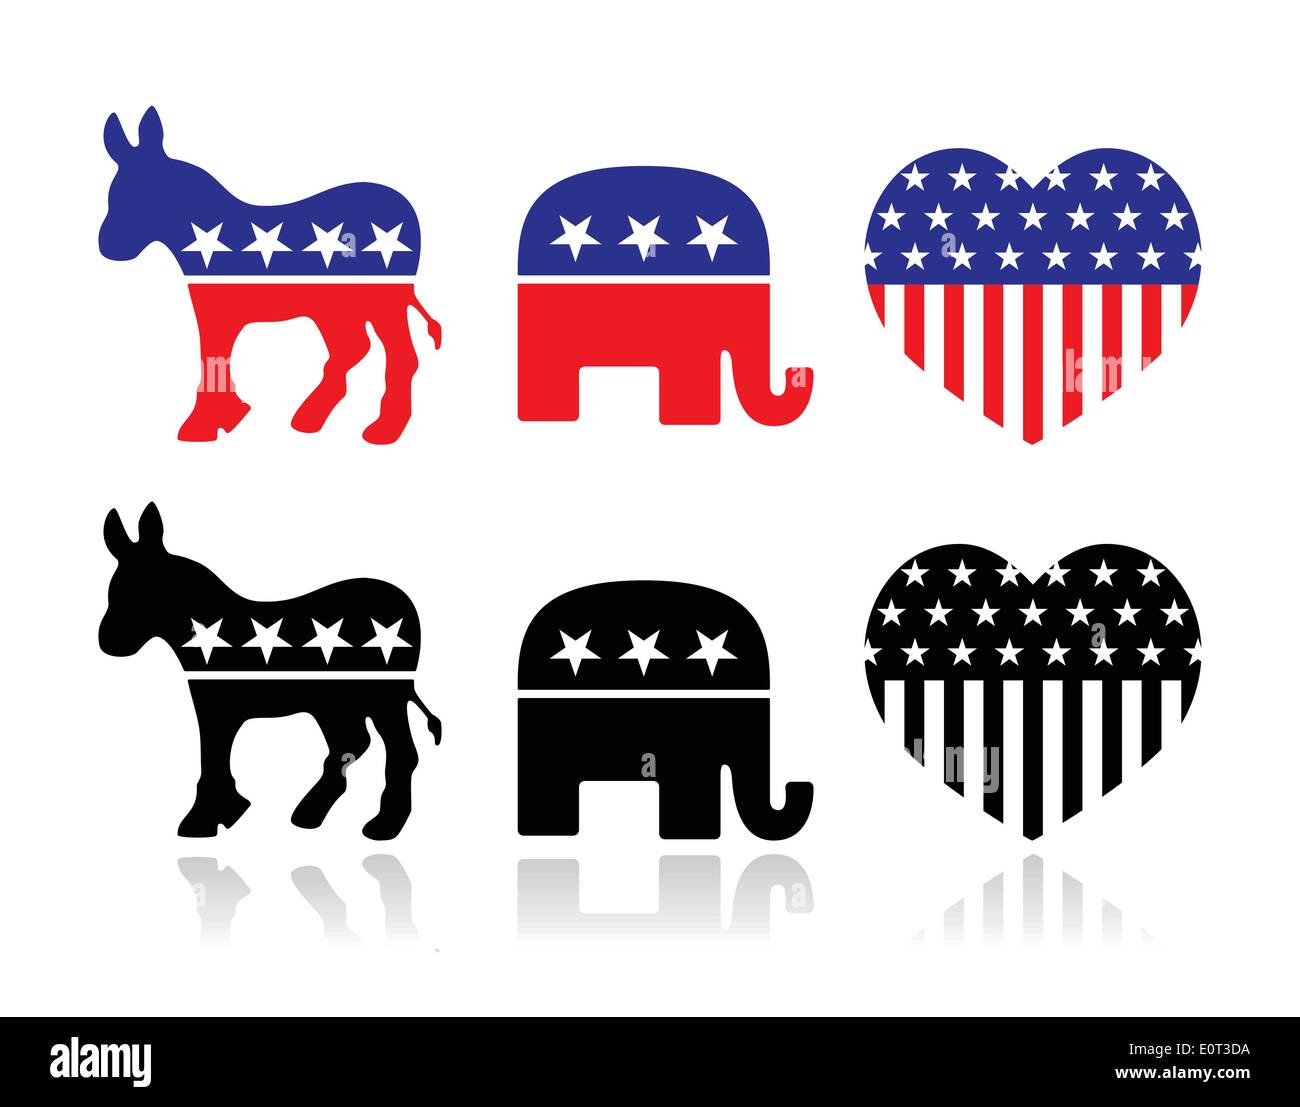 Political parties stock photos political parties stock images usa political parties symbols democrats and republicans stock image buycottarizona